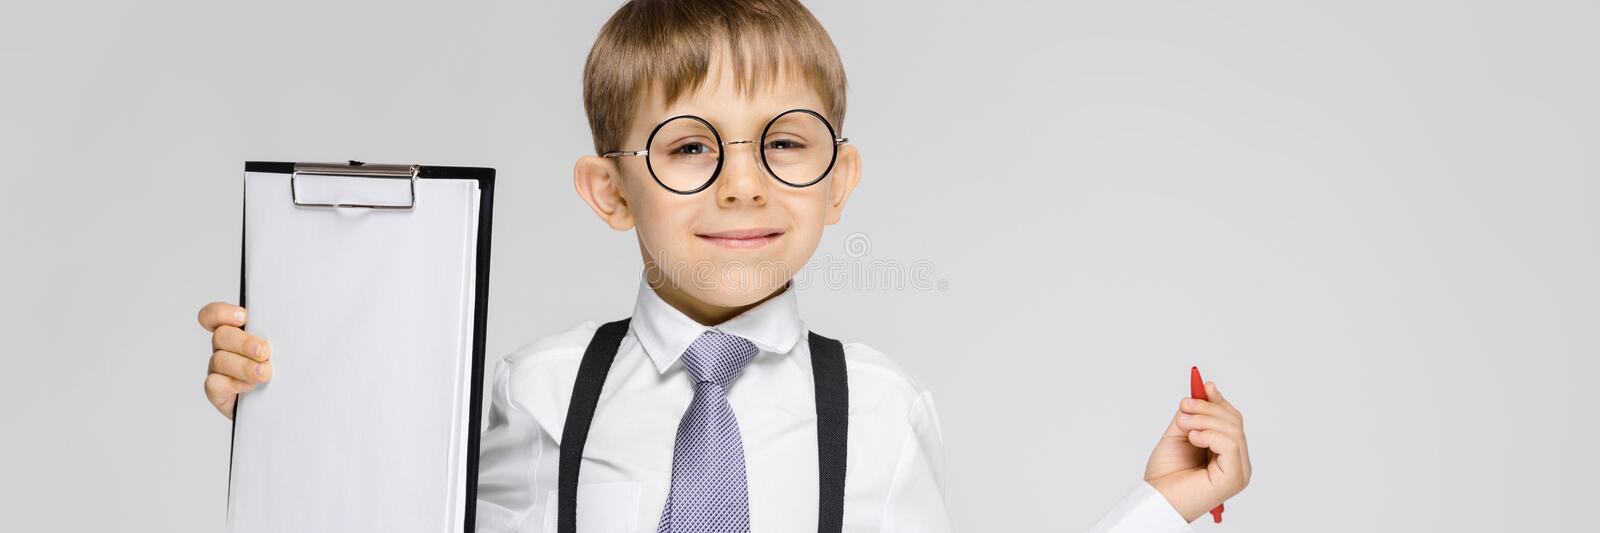 A charming boy in a white shirt, suspenders, a tie and light jeans stands on a gray background. The boy holds a pen and. Portrait of a boy on a gray background royalty free stock image